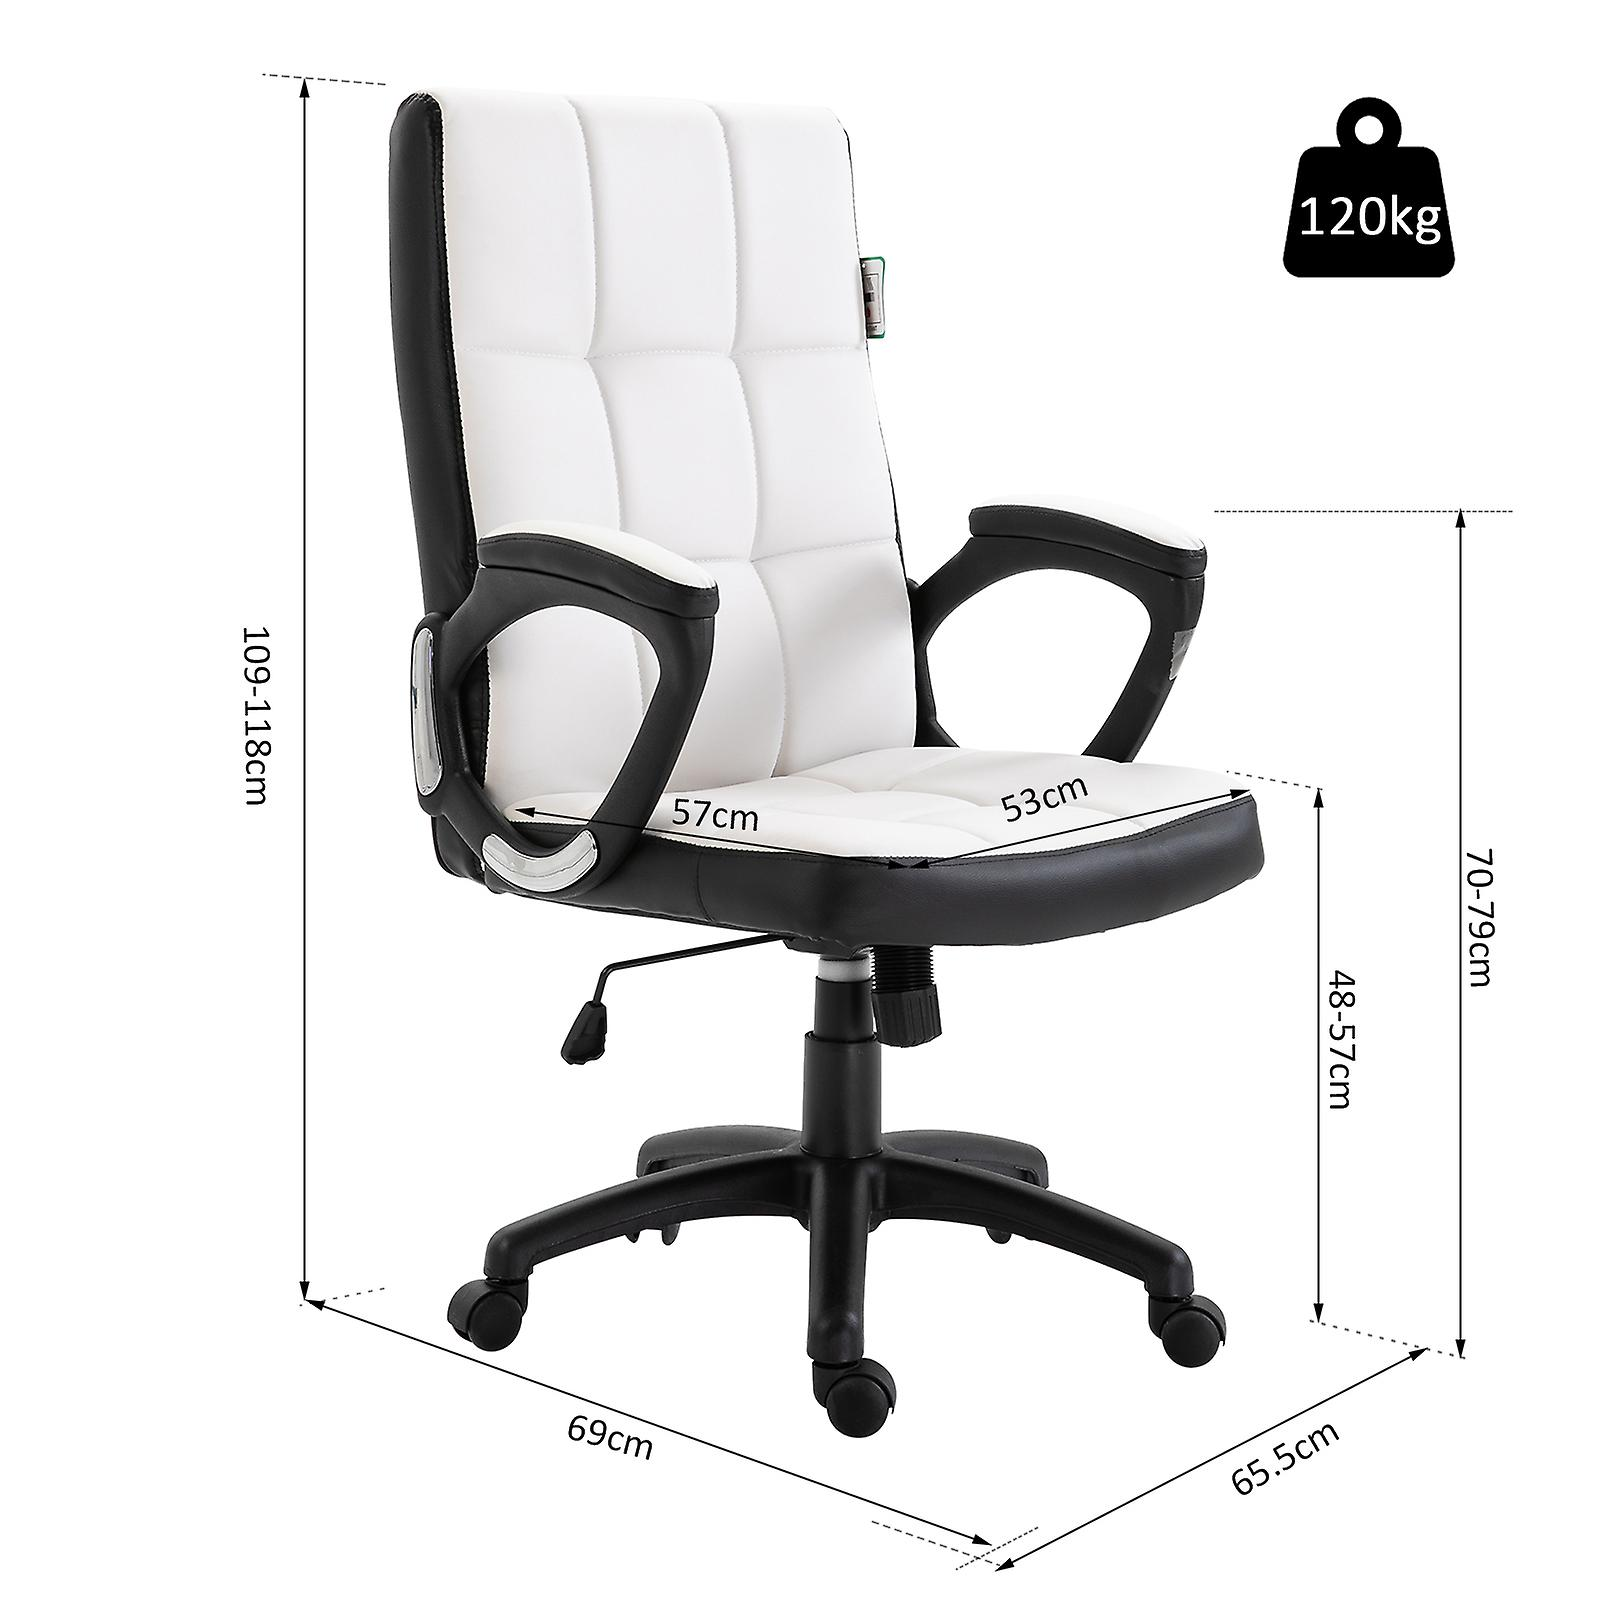 Excellent Vinsetto Office Chair Game Study High Back Adjustable Height Pu Leather Padded Swivel Base Castor Wheels White Gmtry Best Dining Table And Chair Ideas Images Gmtryco